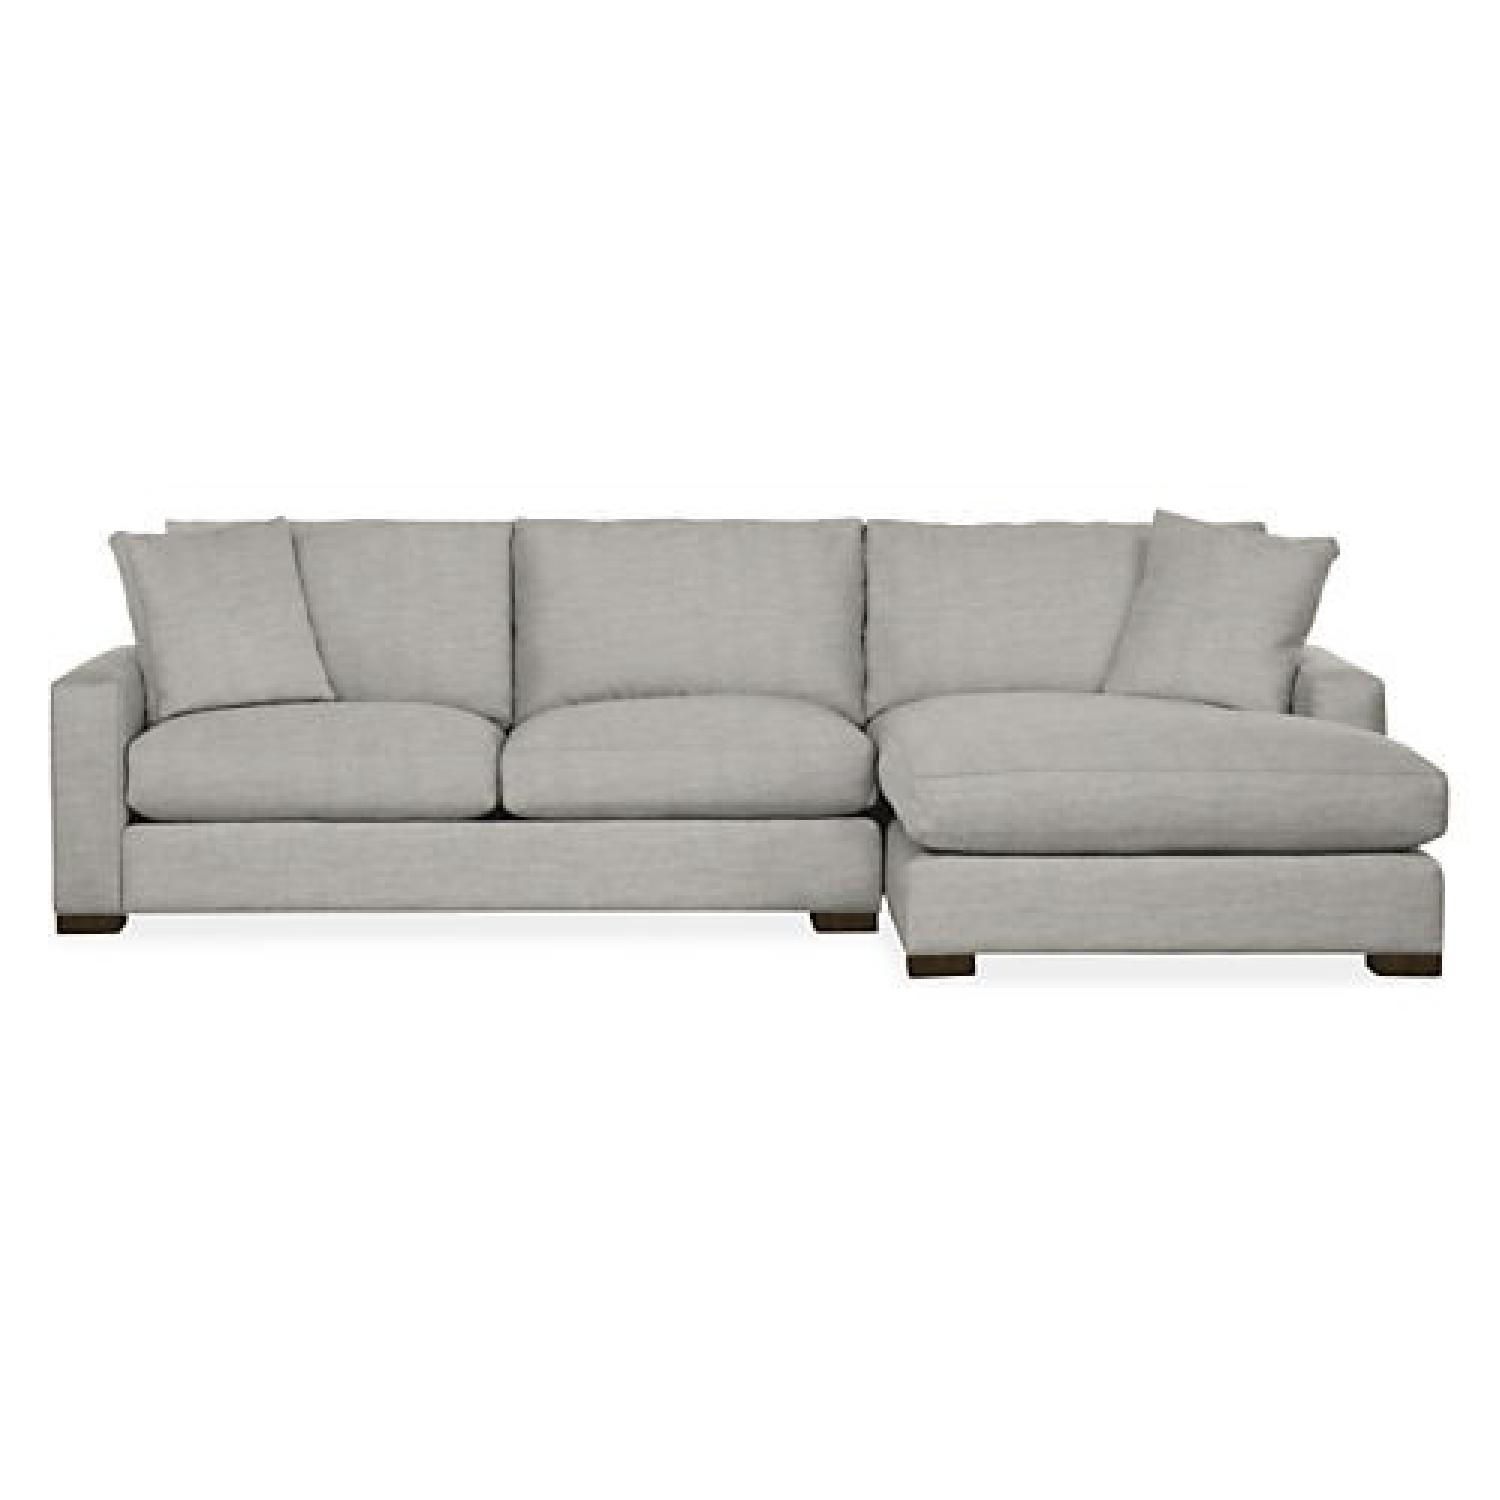 Room & Board Metro Grey Sectional Sofa w/ Right Chaise